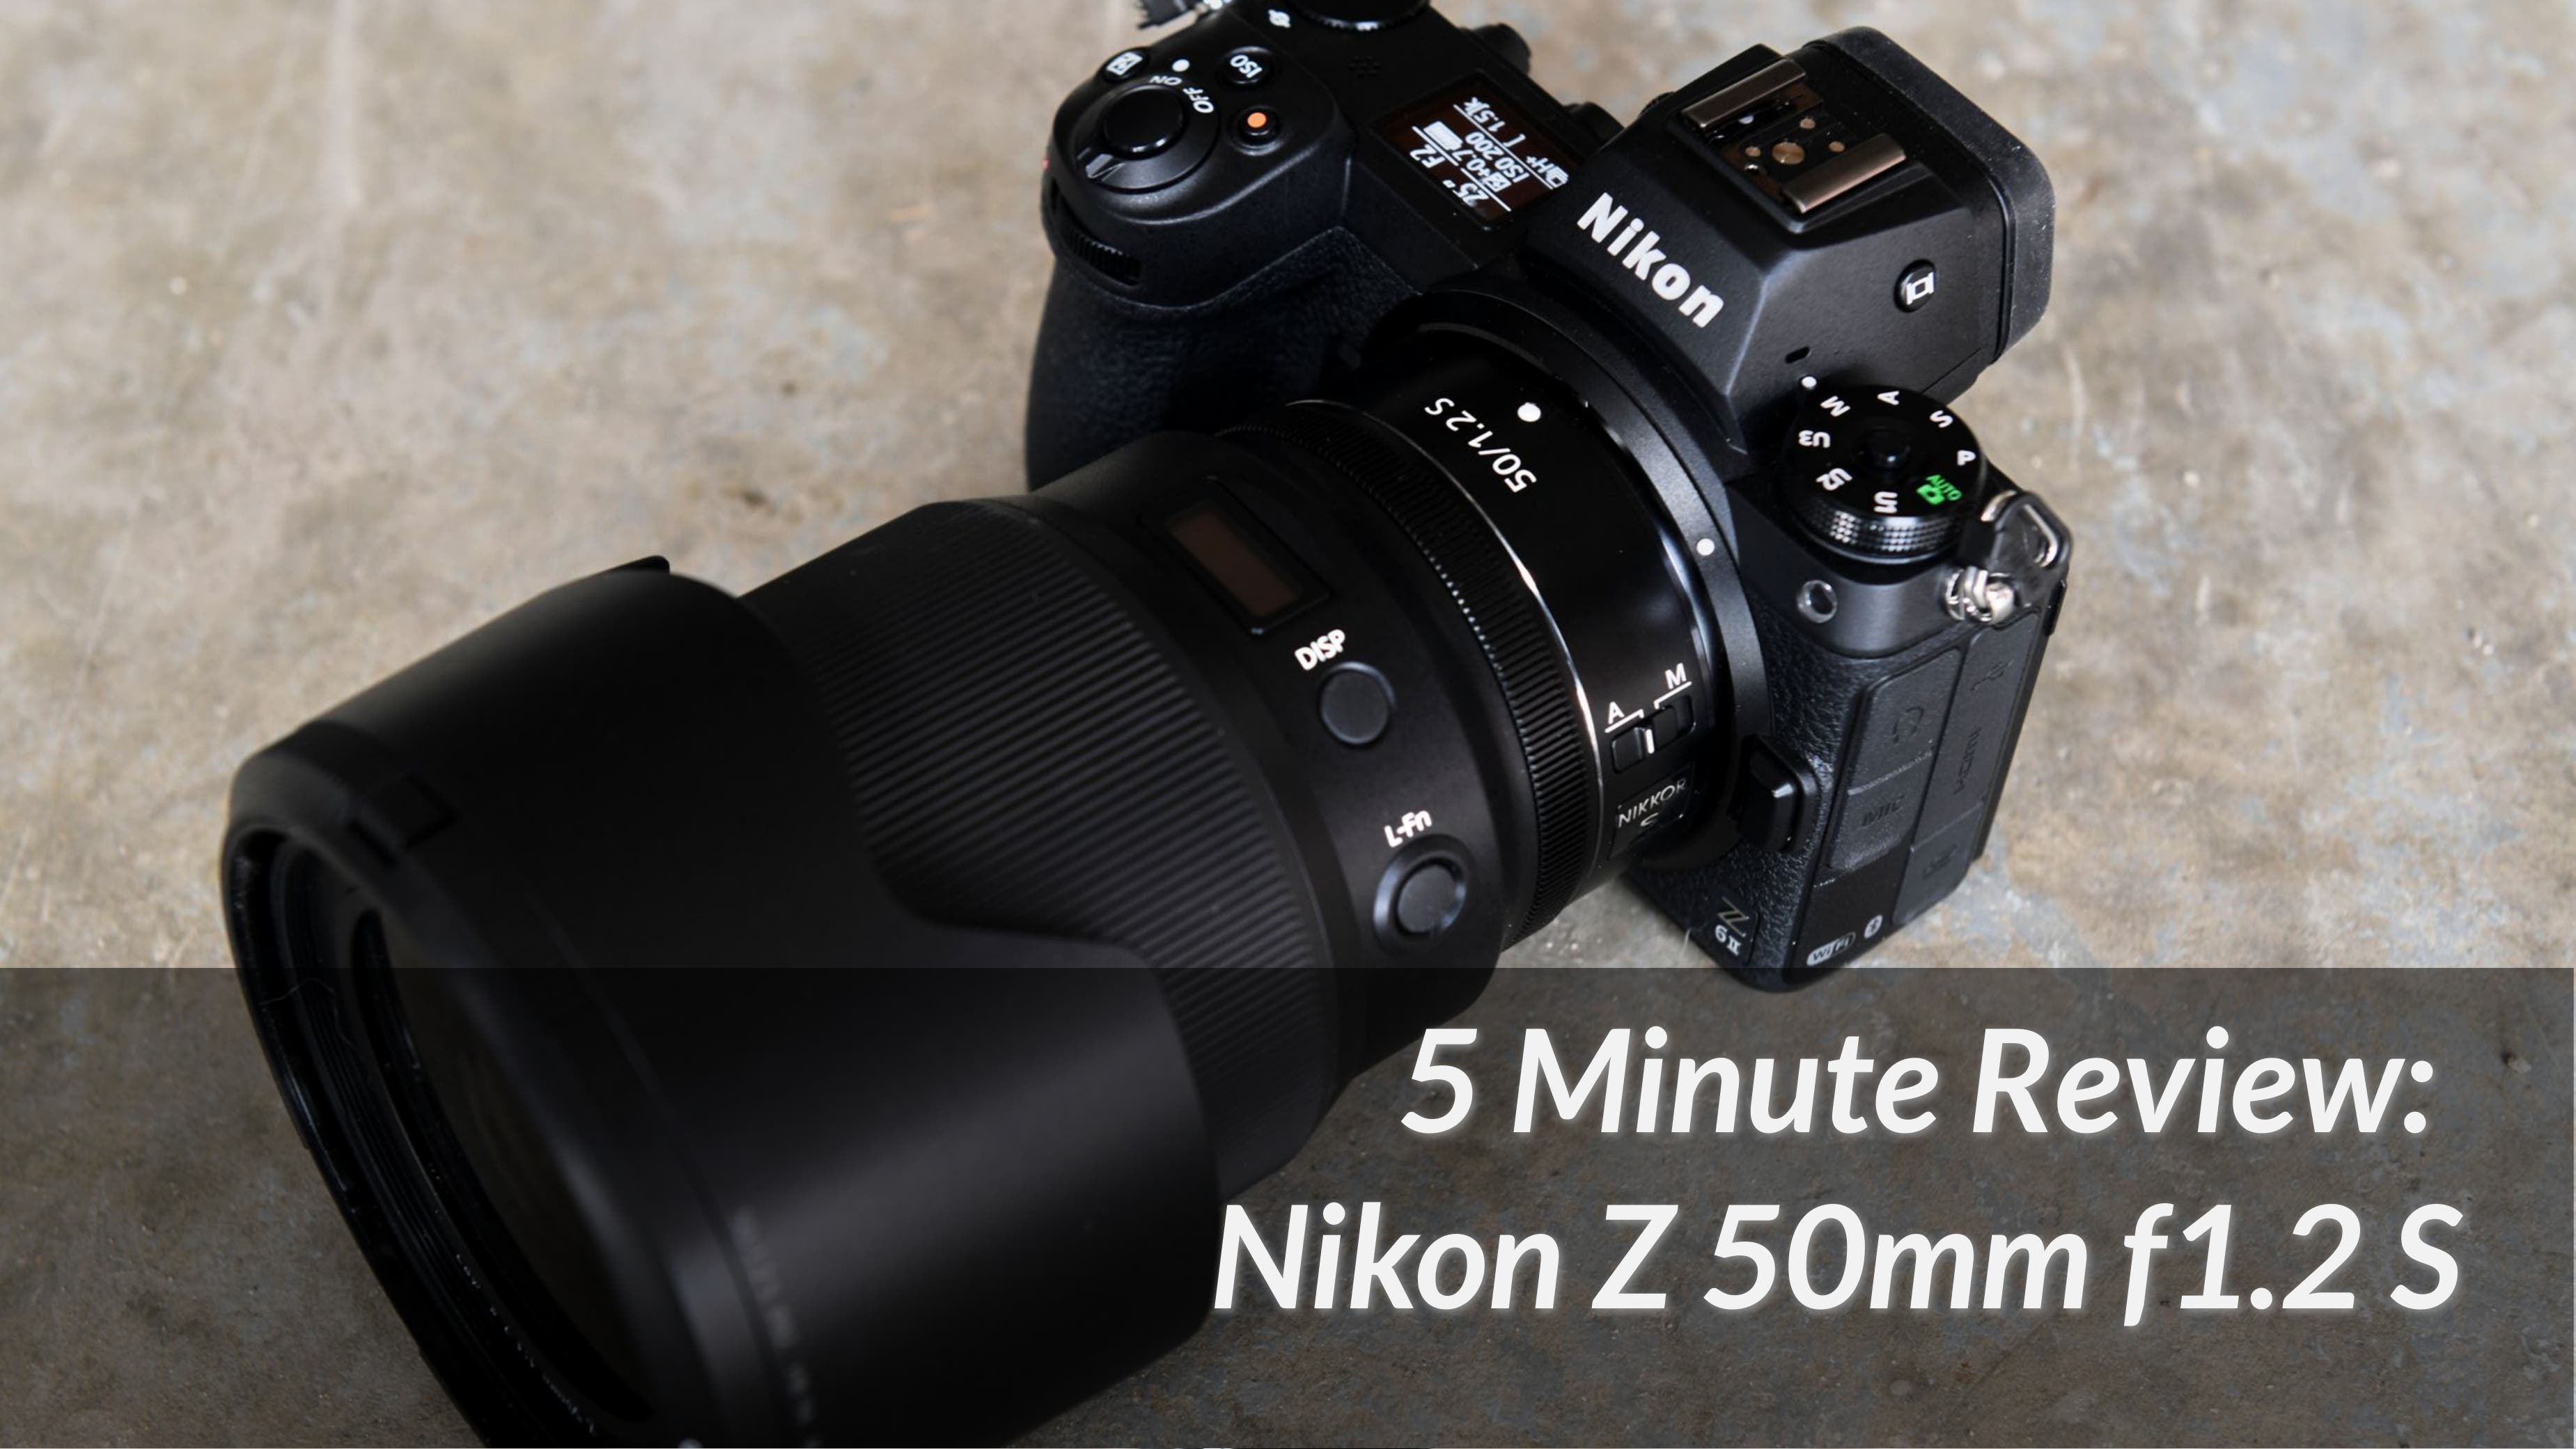 5 Minute Review: The Nikon Z 50mm F1.2 S Is Gorgeous and Vibrant!